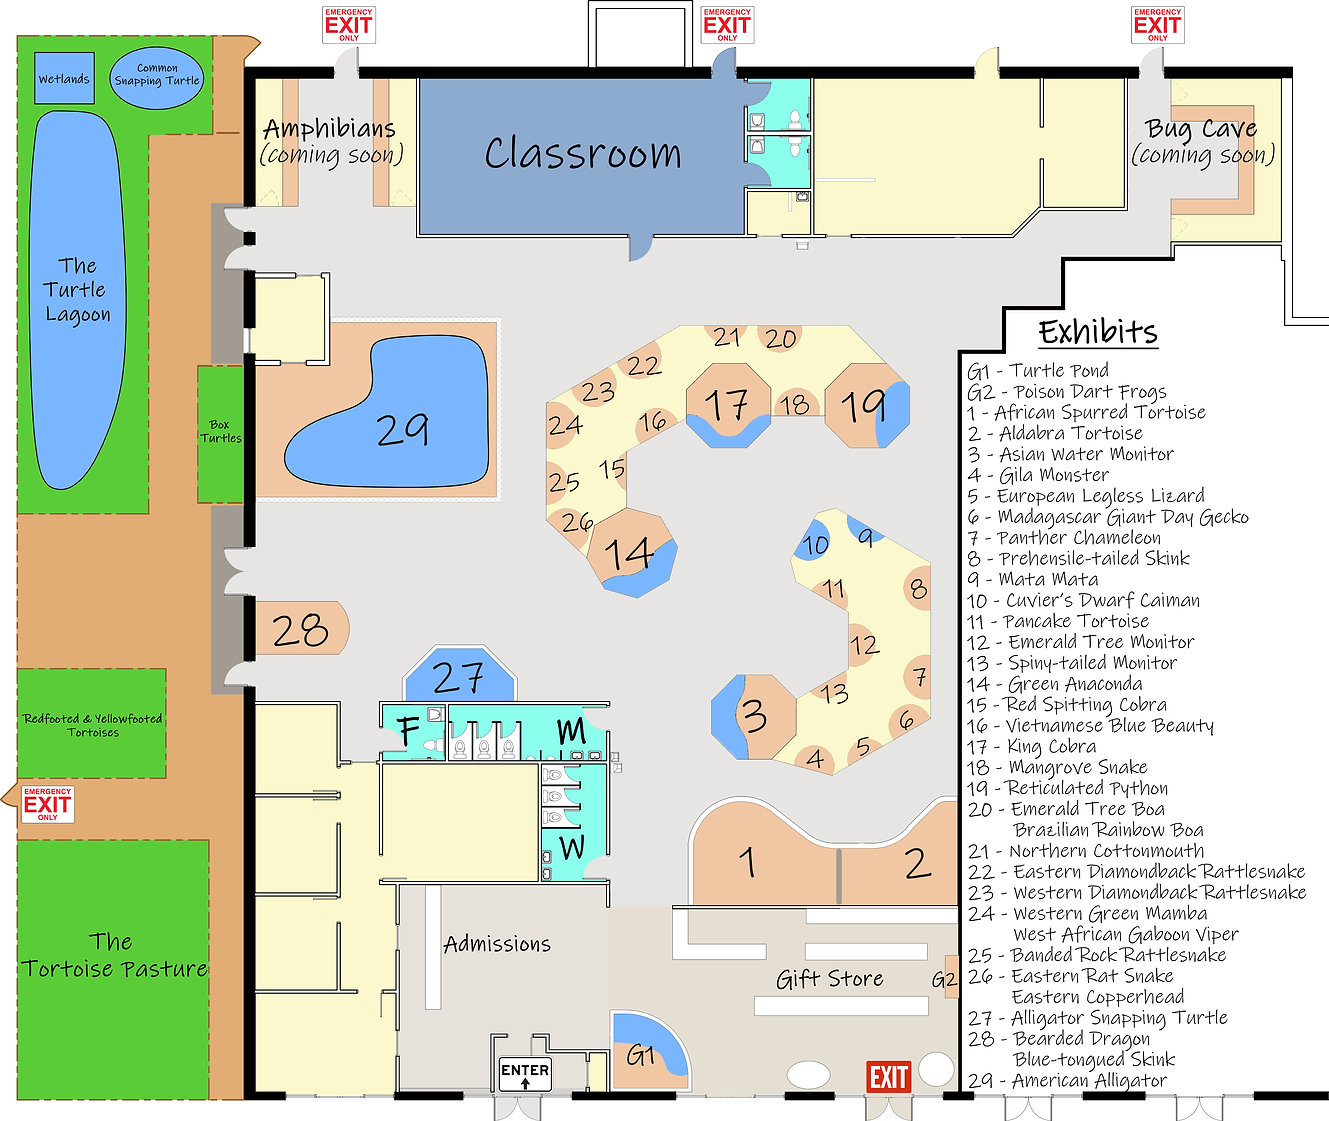 Riverside Floor Plan Map 10-24-20.jpg